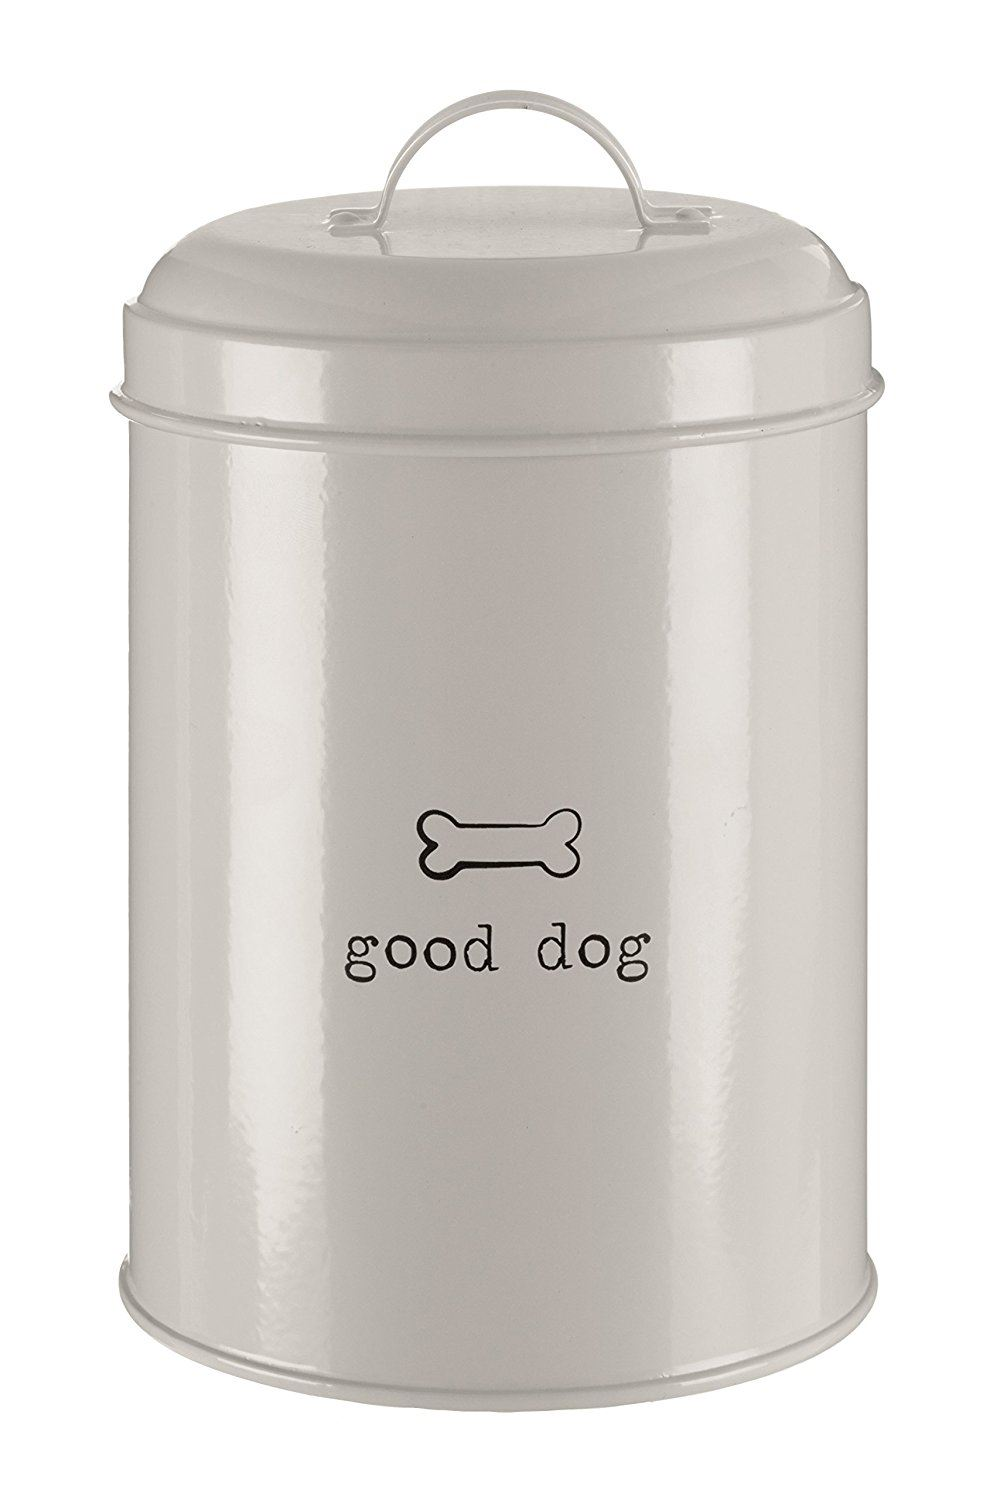 Ltr Dog Food Container